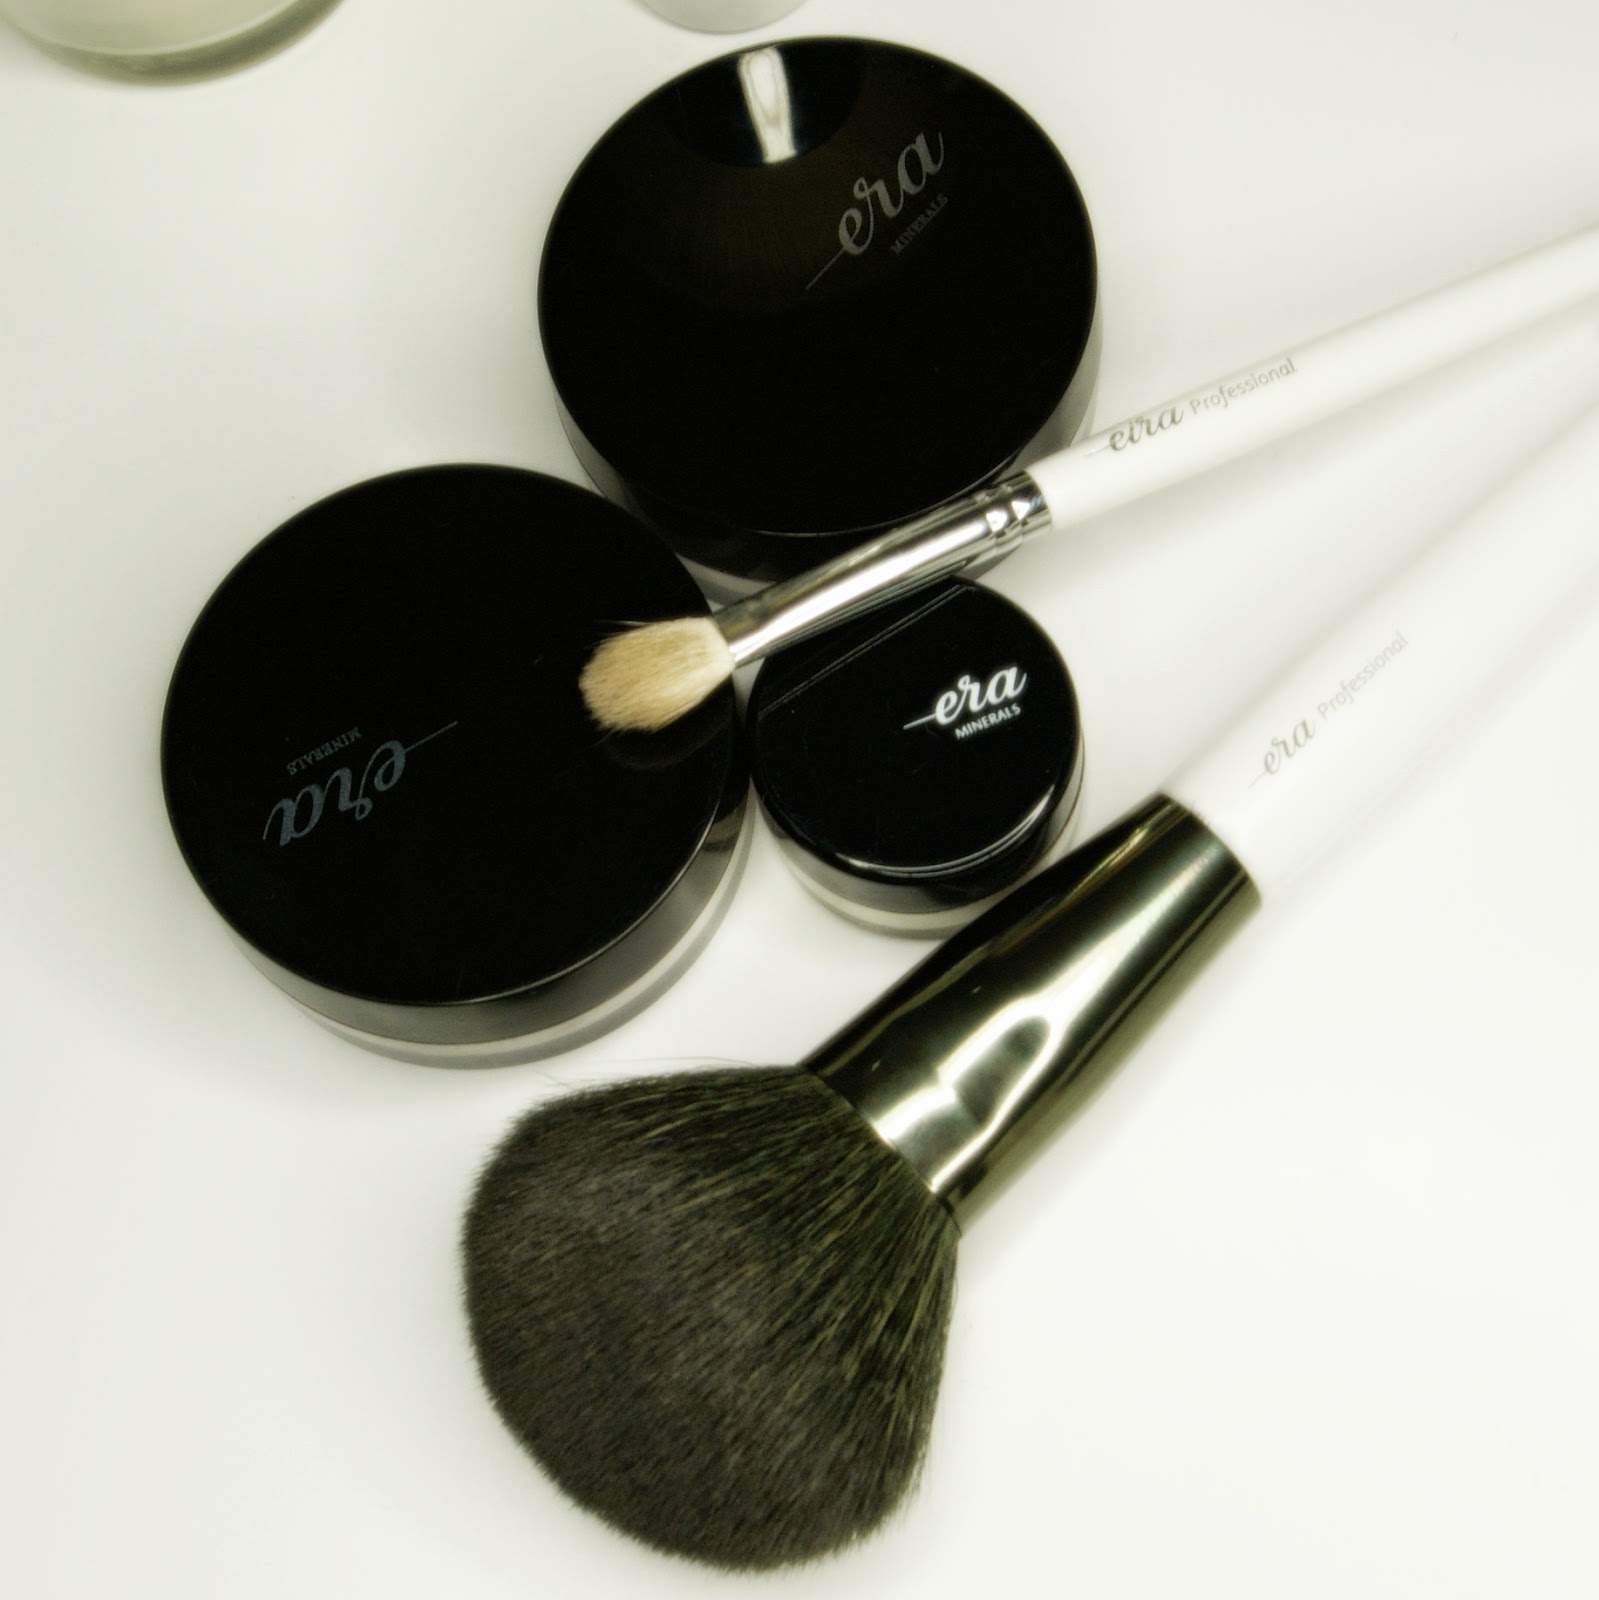 makeup brush, mineral makeup,  Era Minerals, Makeup Geek, IsaDora, Eveline, Kobo, Avon, makeup, party look, brown smokey